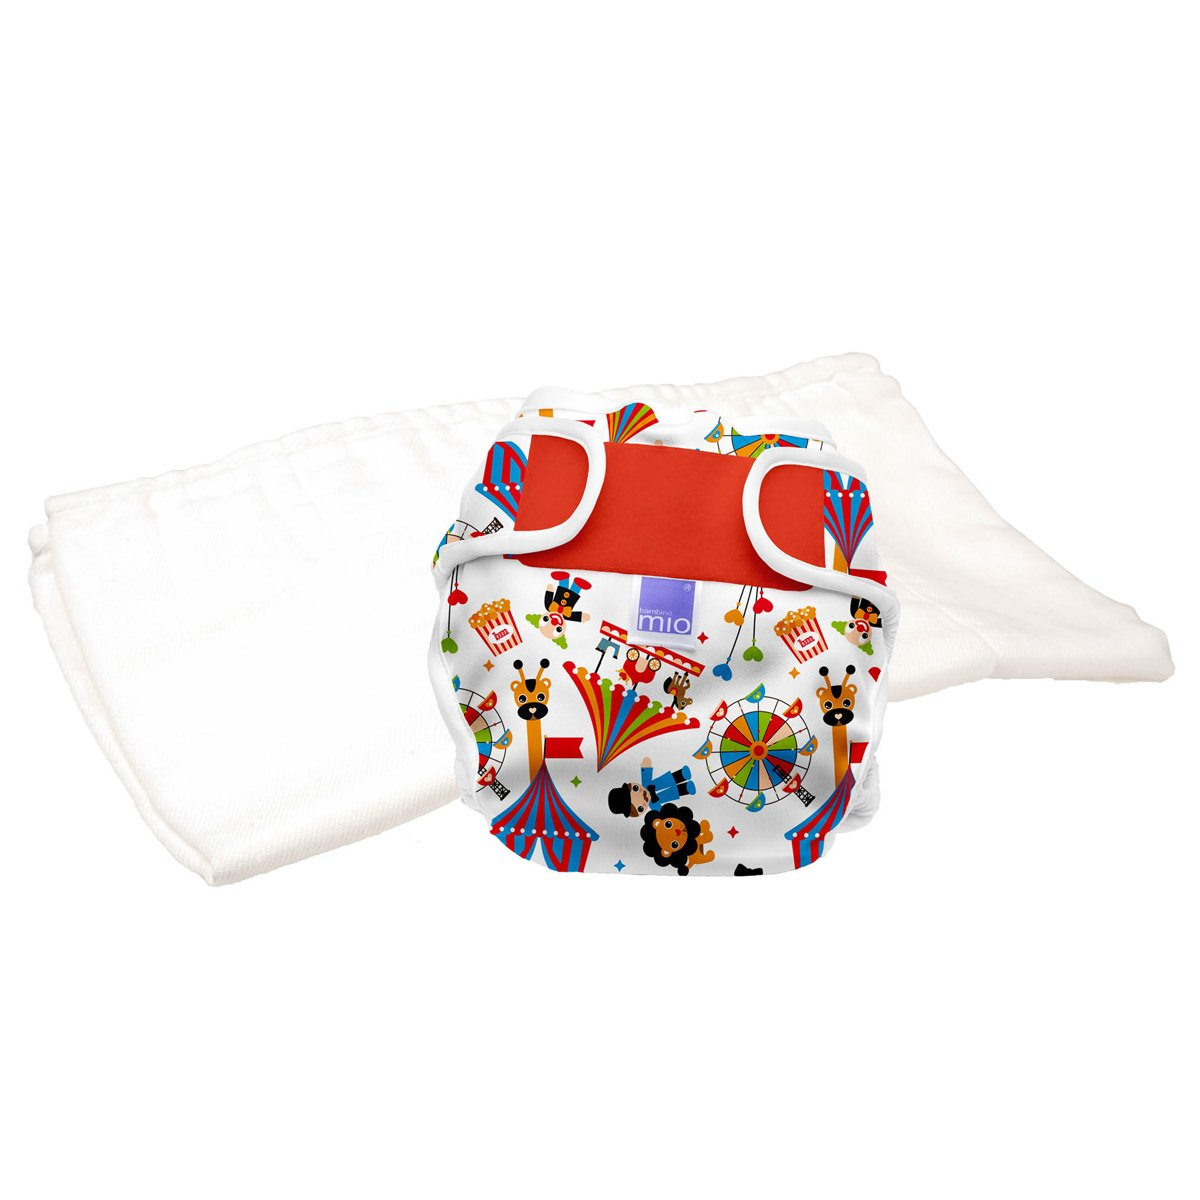 Bambino Mio Miosoft Reusable Nappy Trial Pack - Circus Time, Size 1 ( Size 1 (<9kg) TPMS1 CT